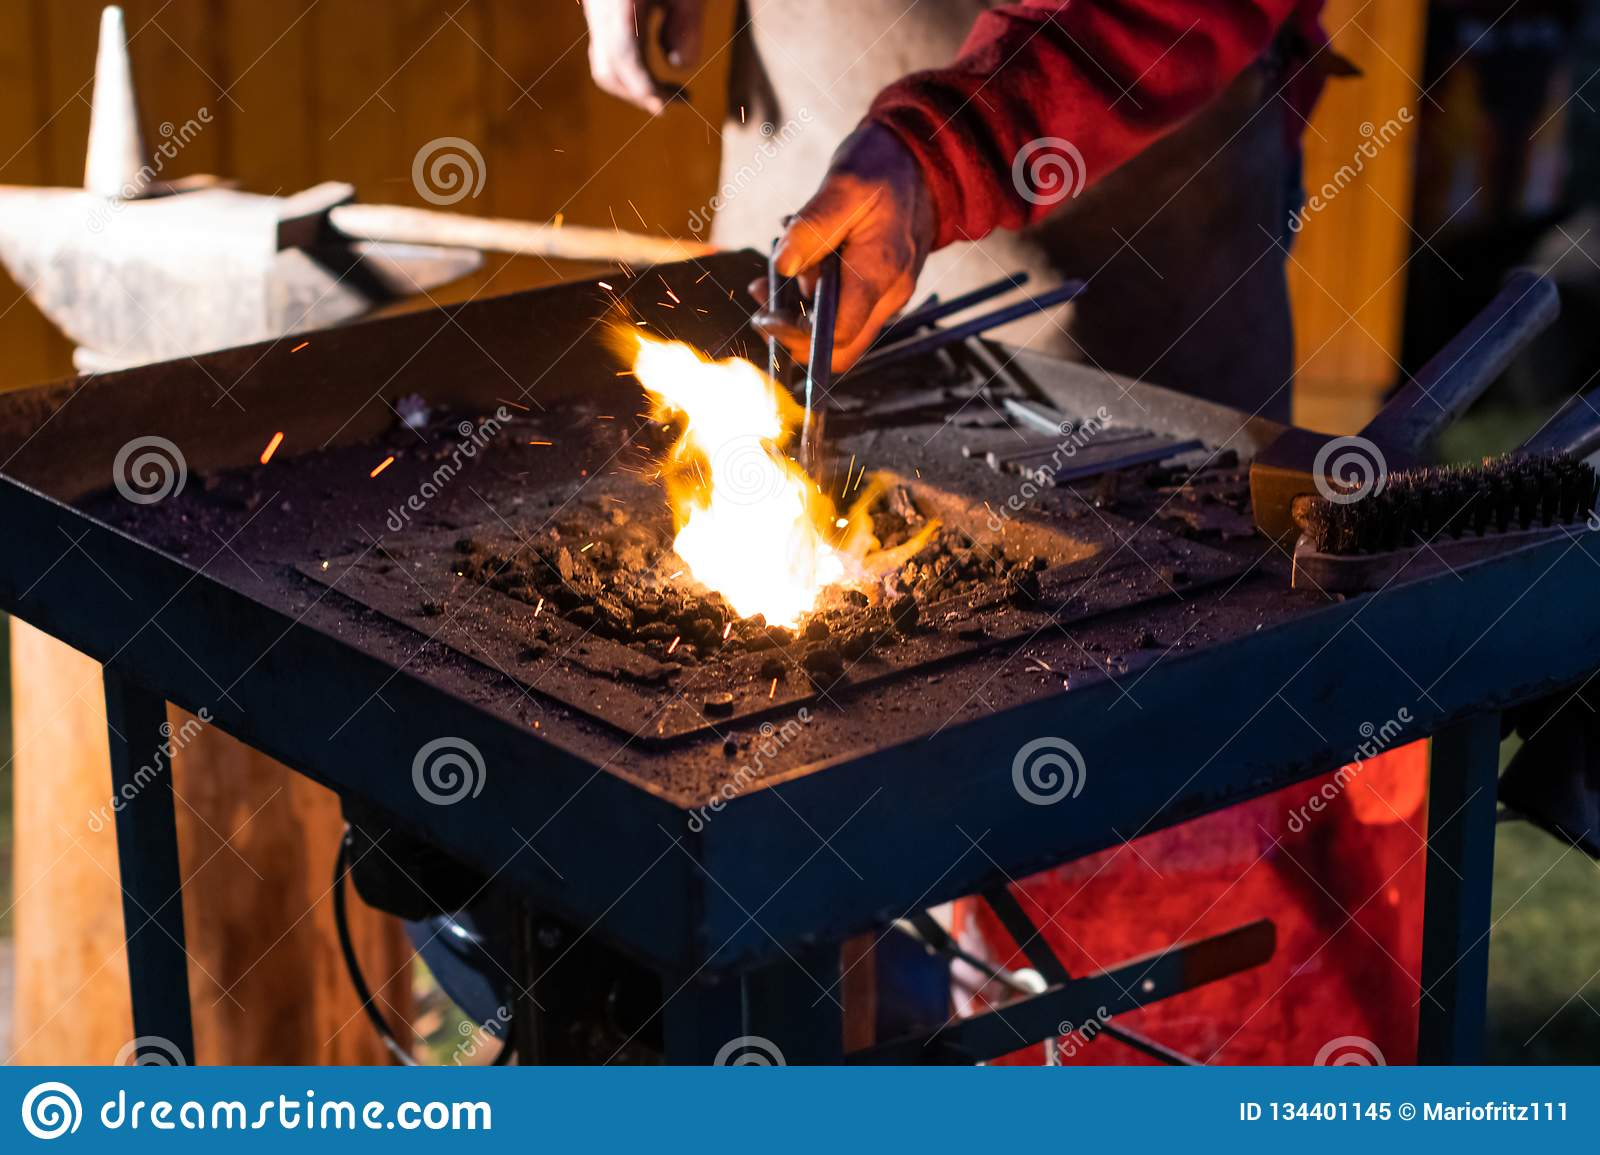 A Craftsman Working With Fire And A Hammer On A Glowing Iron